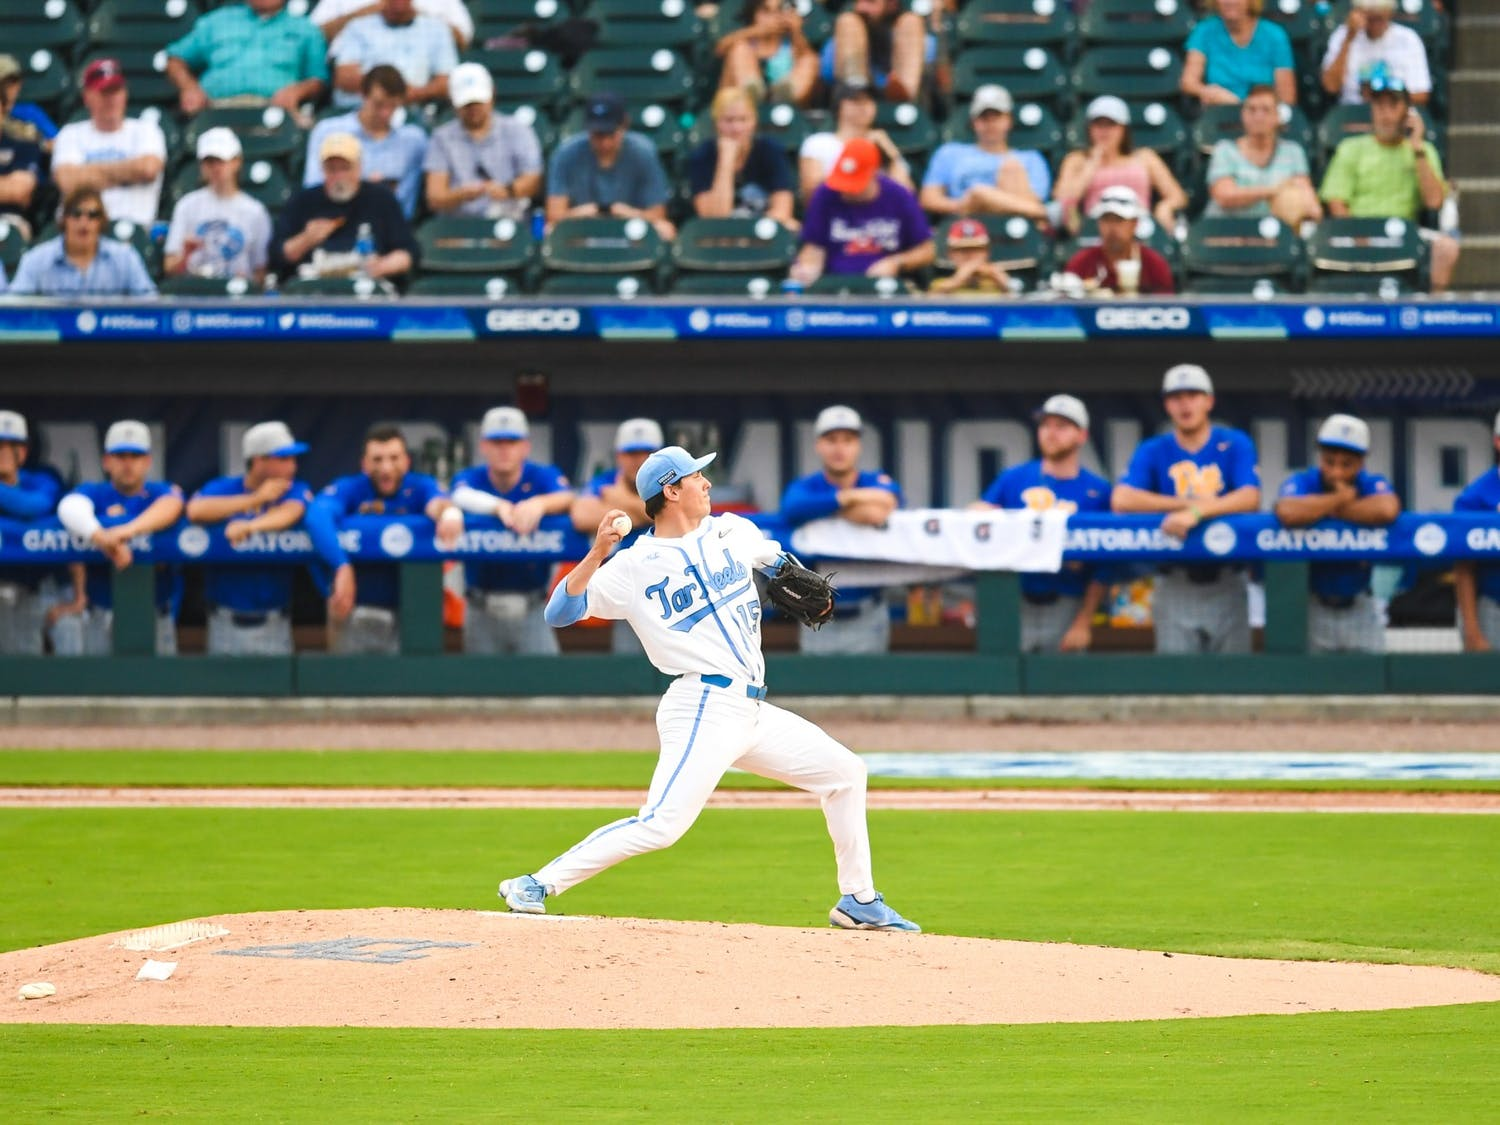 UNC senior right handed pitcher Gage Gillian (15) pitches the ball at the ACC tournament against Pittsburgh on Tuesday May 25, 2021 in Charlotte, NC. UNC lost 5-3. Photo courtesy of Maggie Boulton and Laura Wolff.